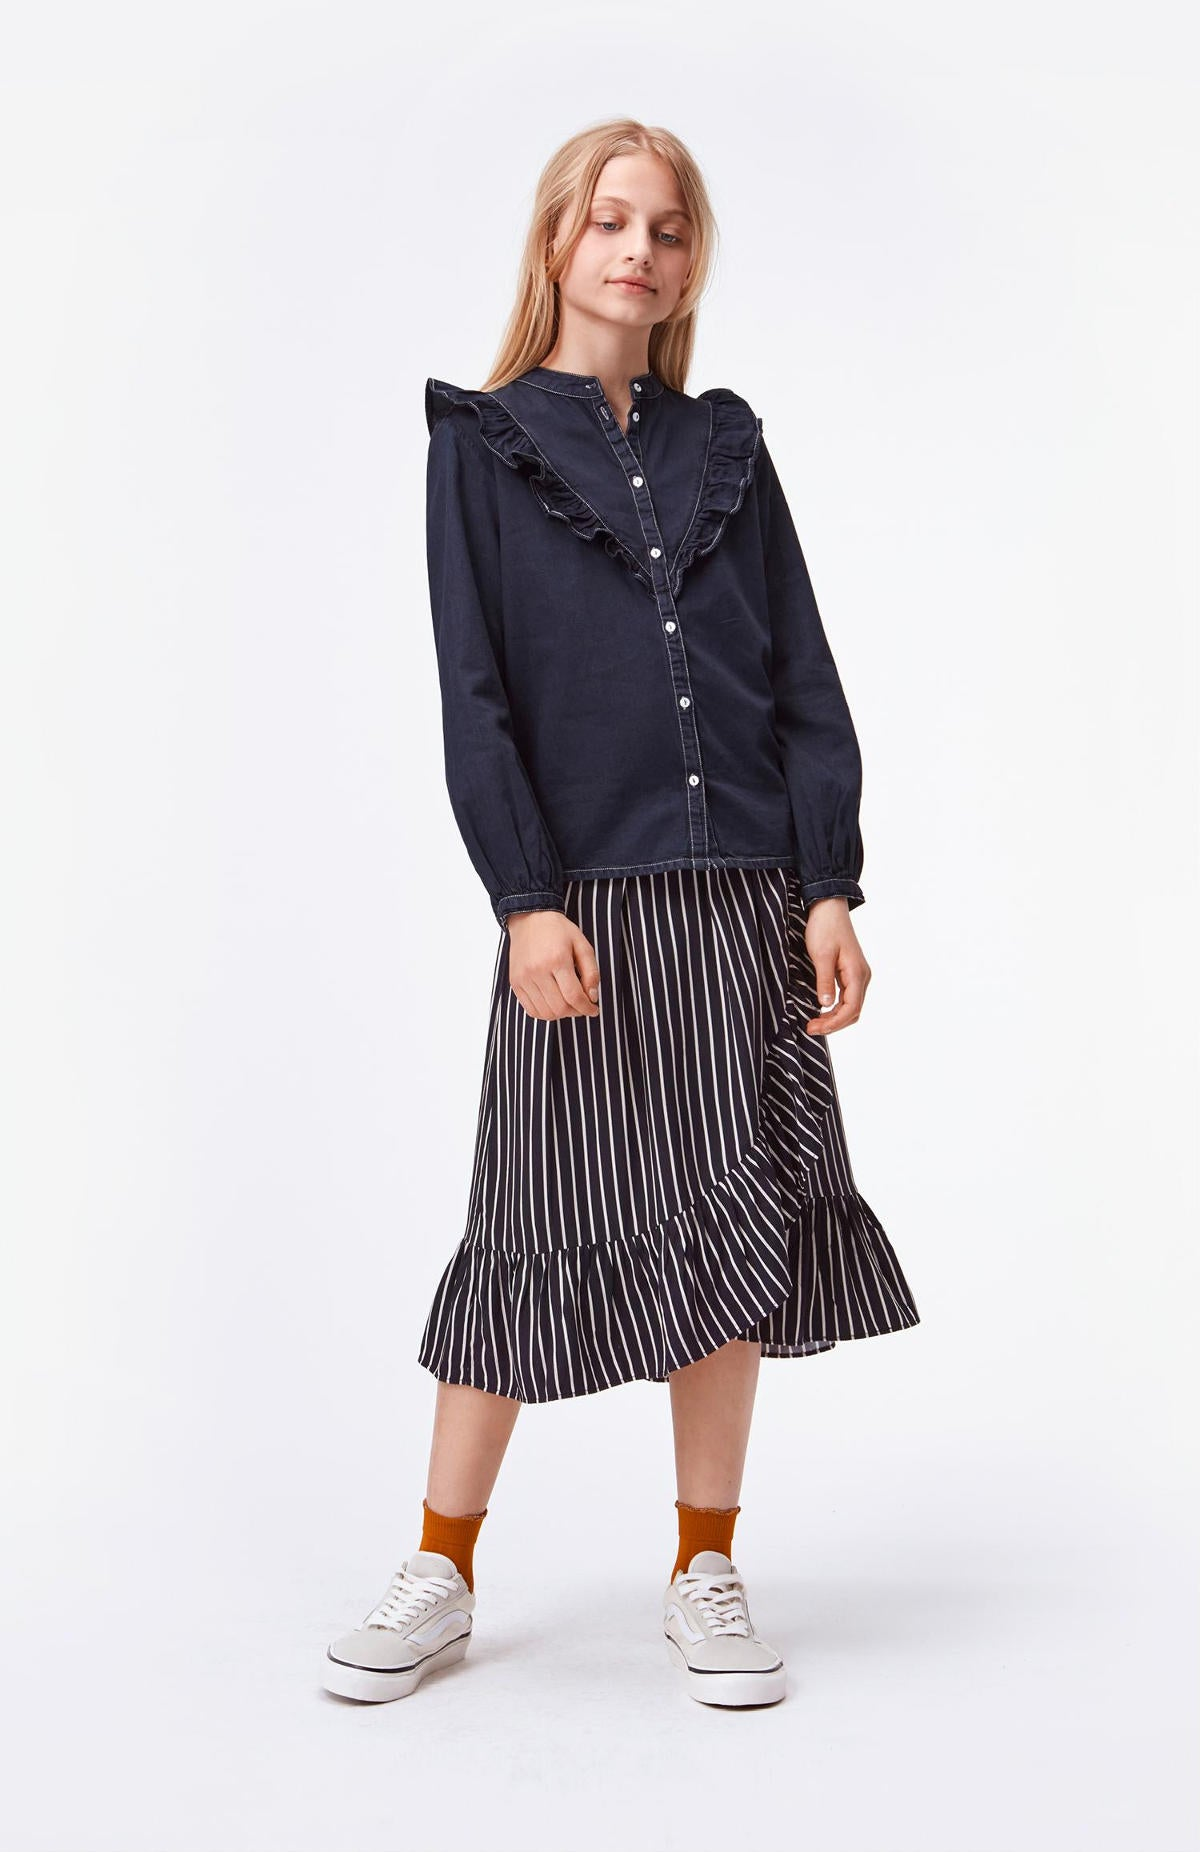 Molo Navy Stripe Blondie Skirt